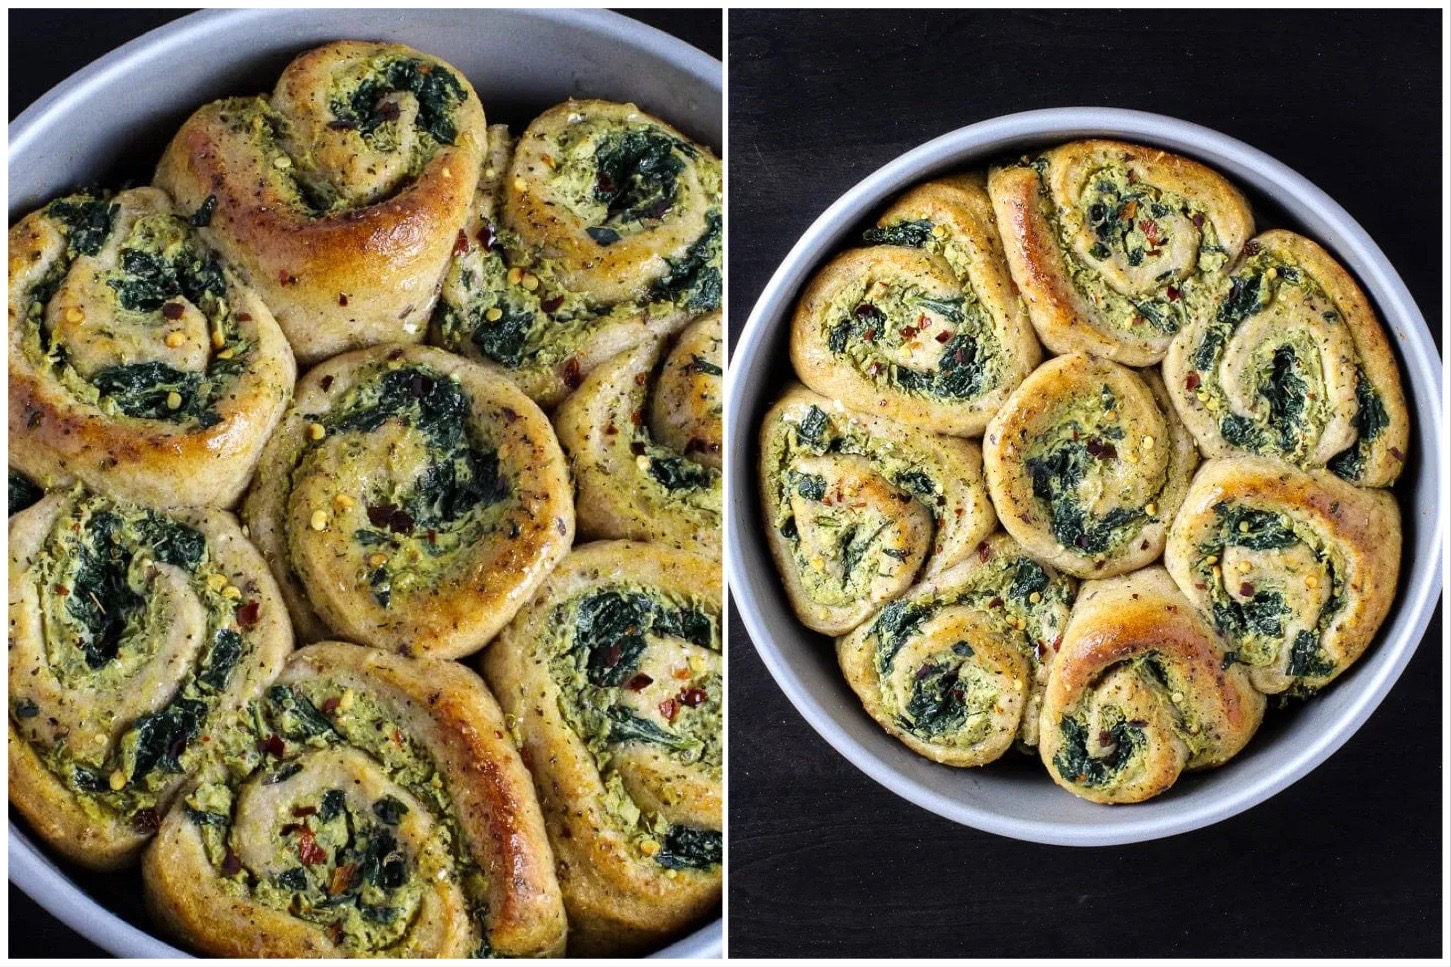 9 Festive Vegan Christmas Appetizers to Start Your Holiday on a High Note